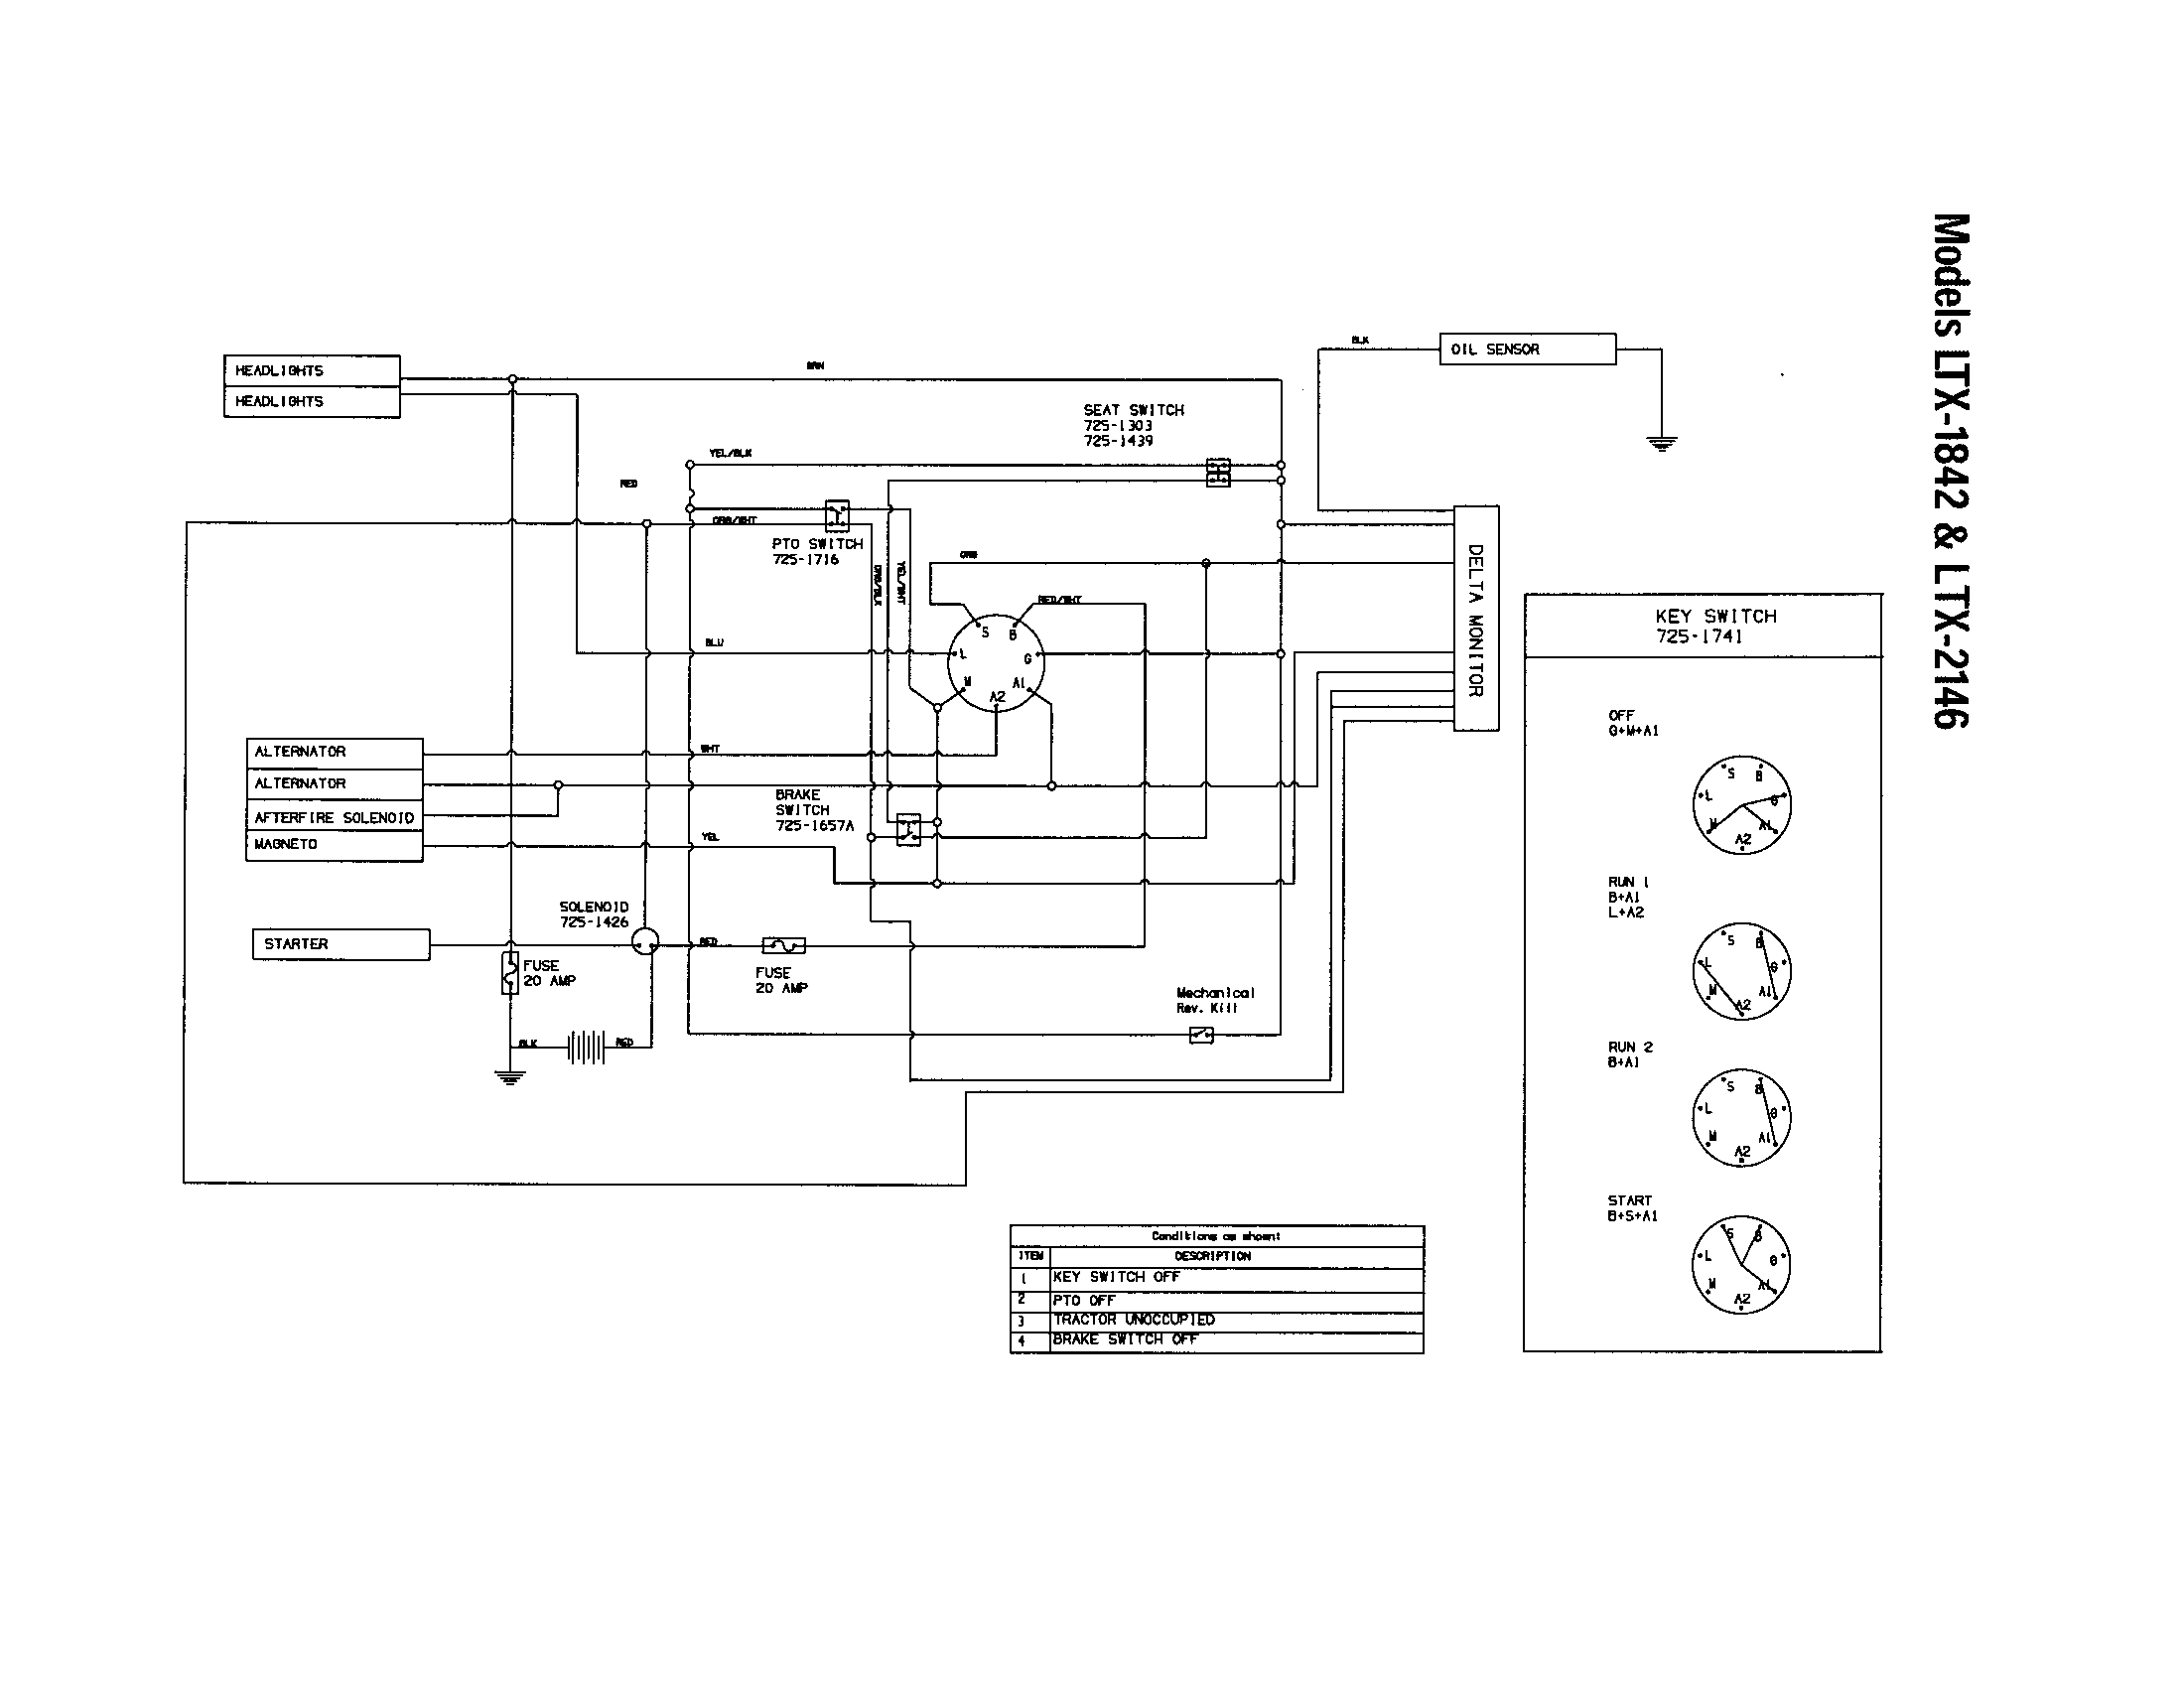 5f6fdf170ac50150de0653e8e97fb173 wiring diagram diagram & parts list for model 13ap609g063 troybilt wiring diagram for a craftsman riding lawn mower at bayanpartner.co